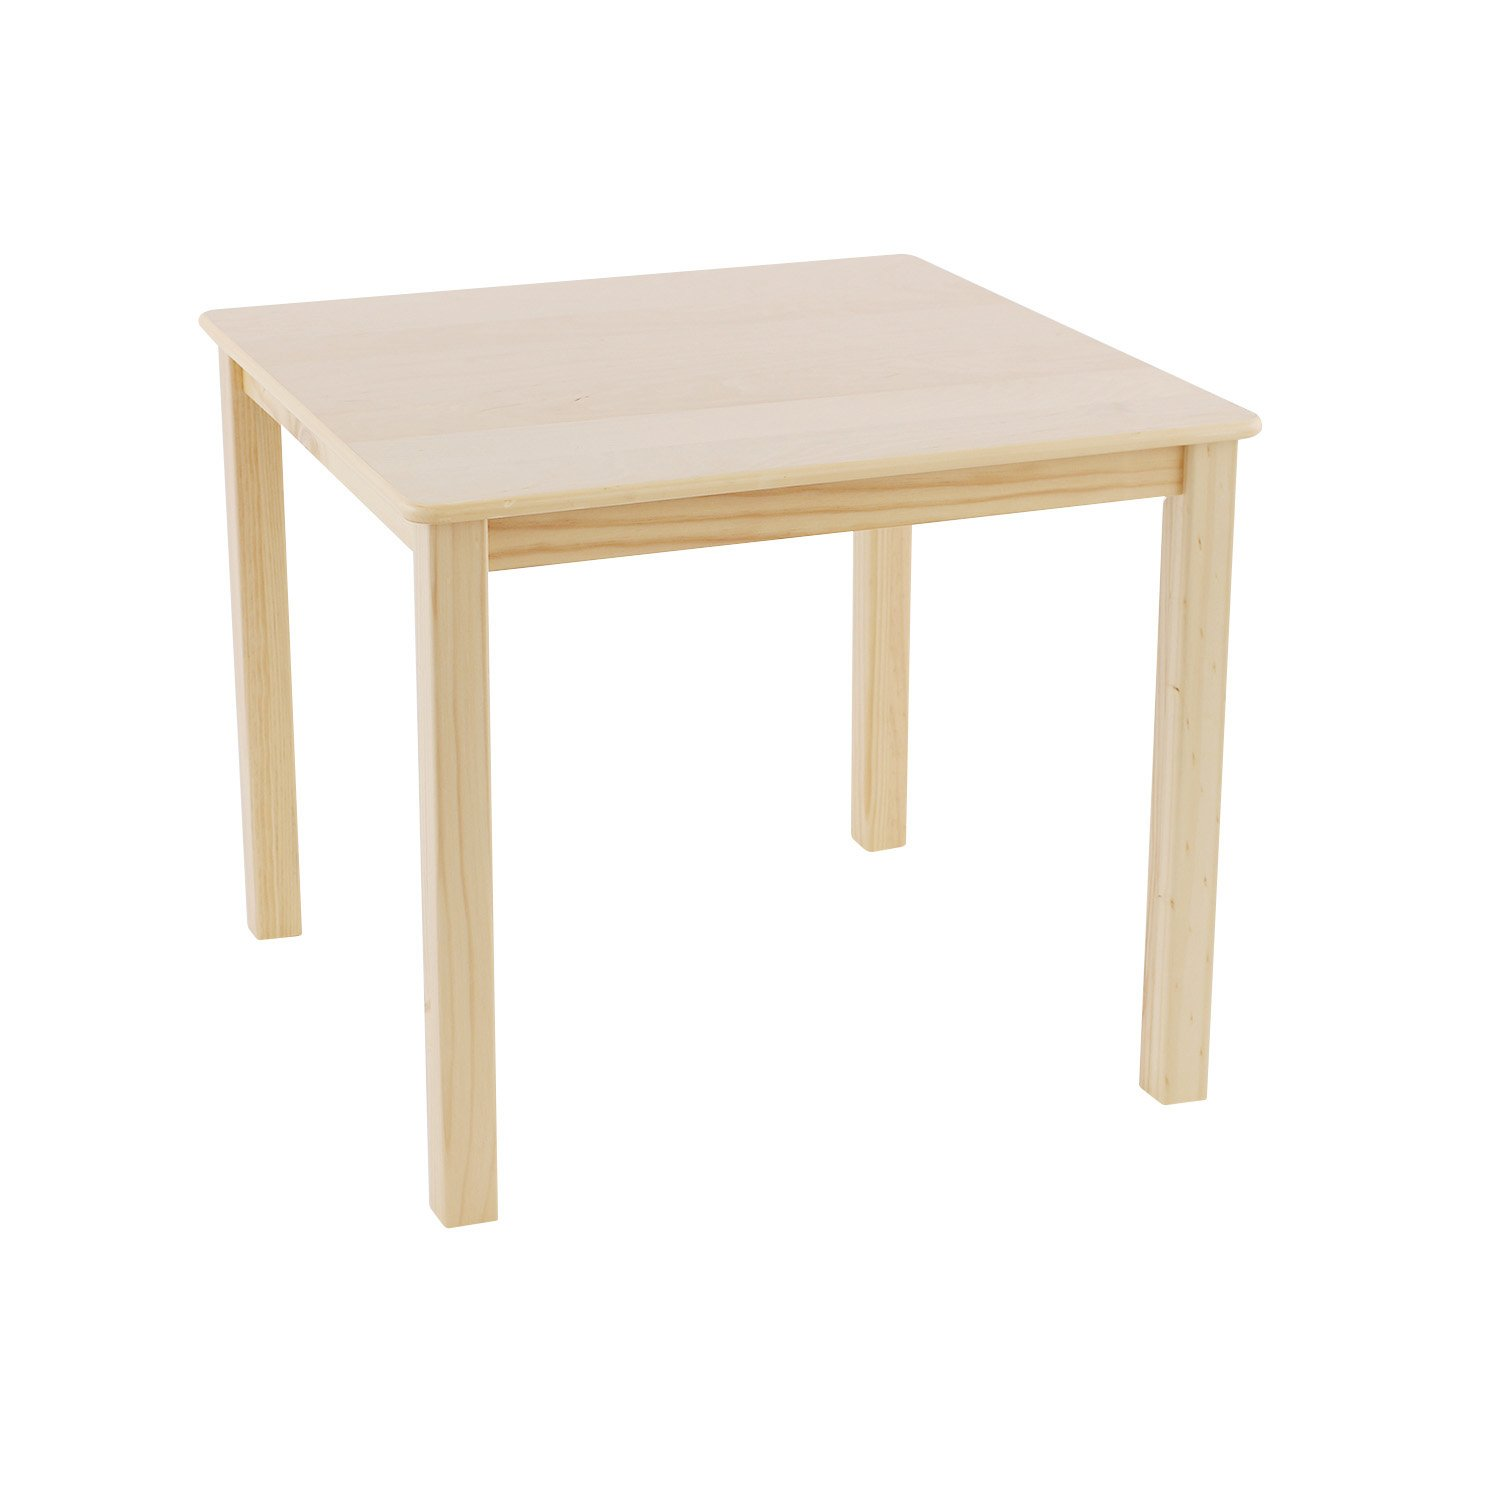 Max & Lily Natural Wood Kid and Toddler Square Table, Espresso 15-0350-005